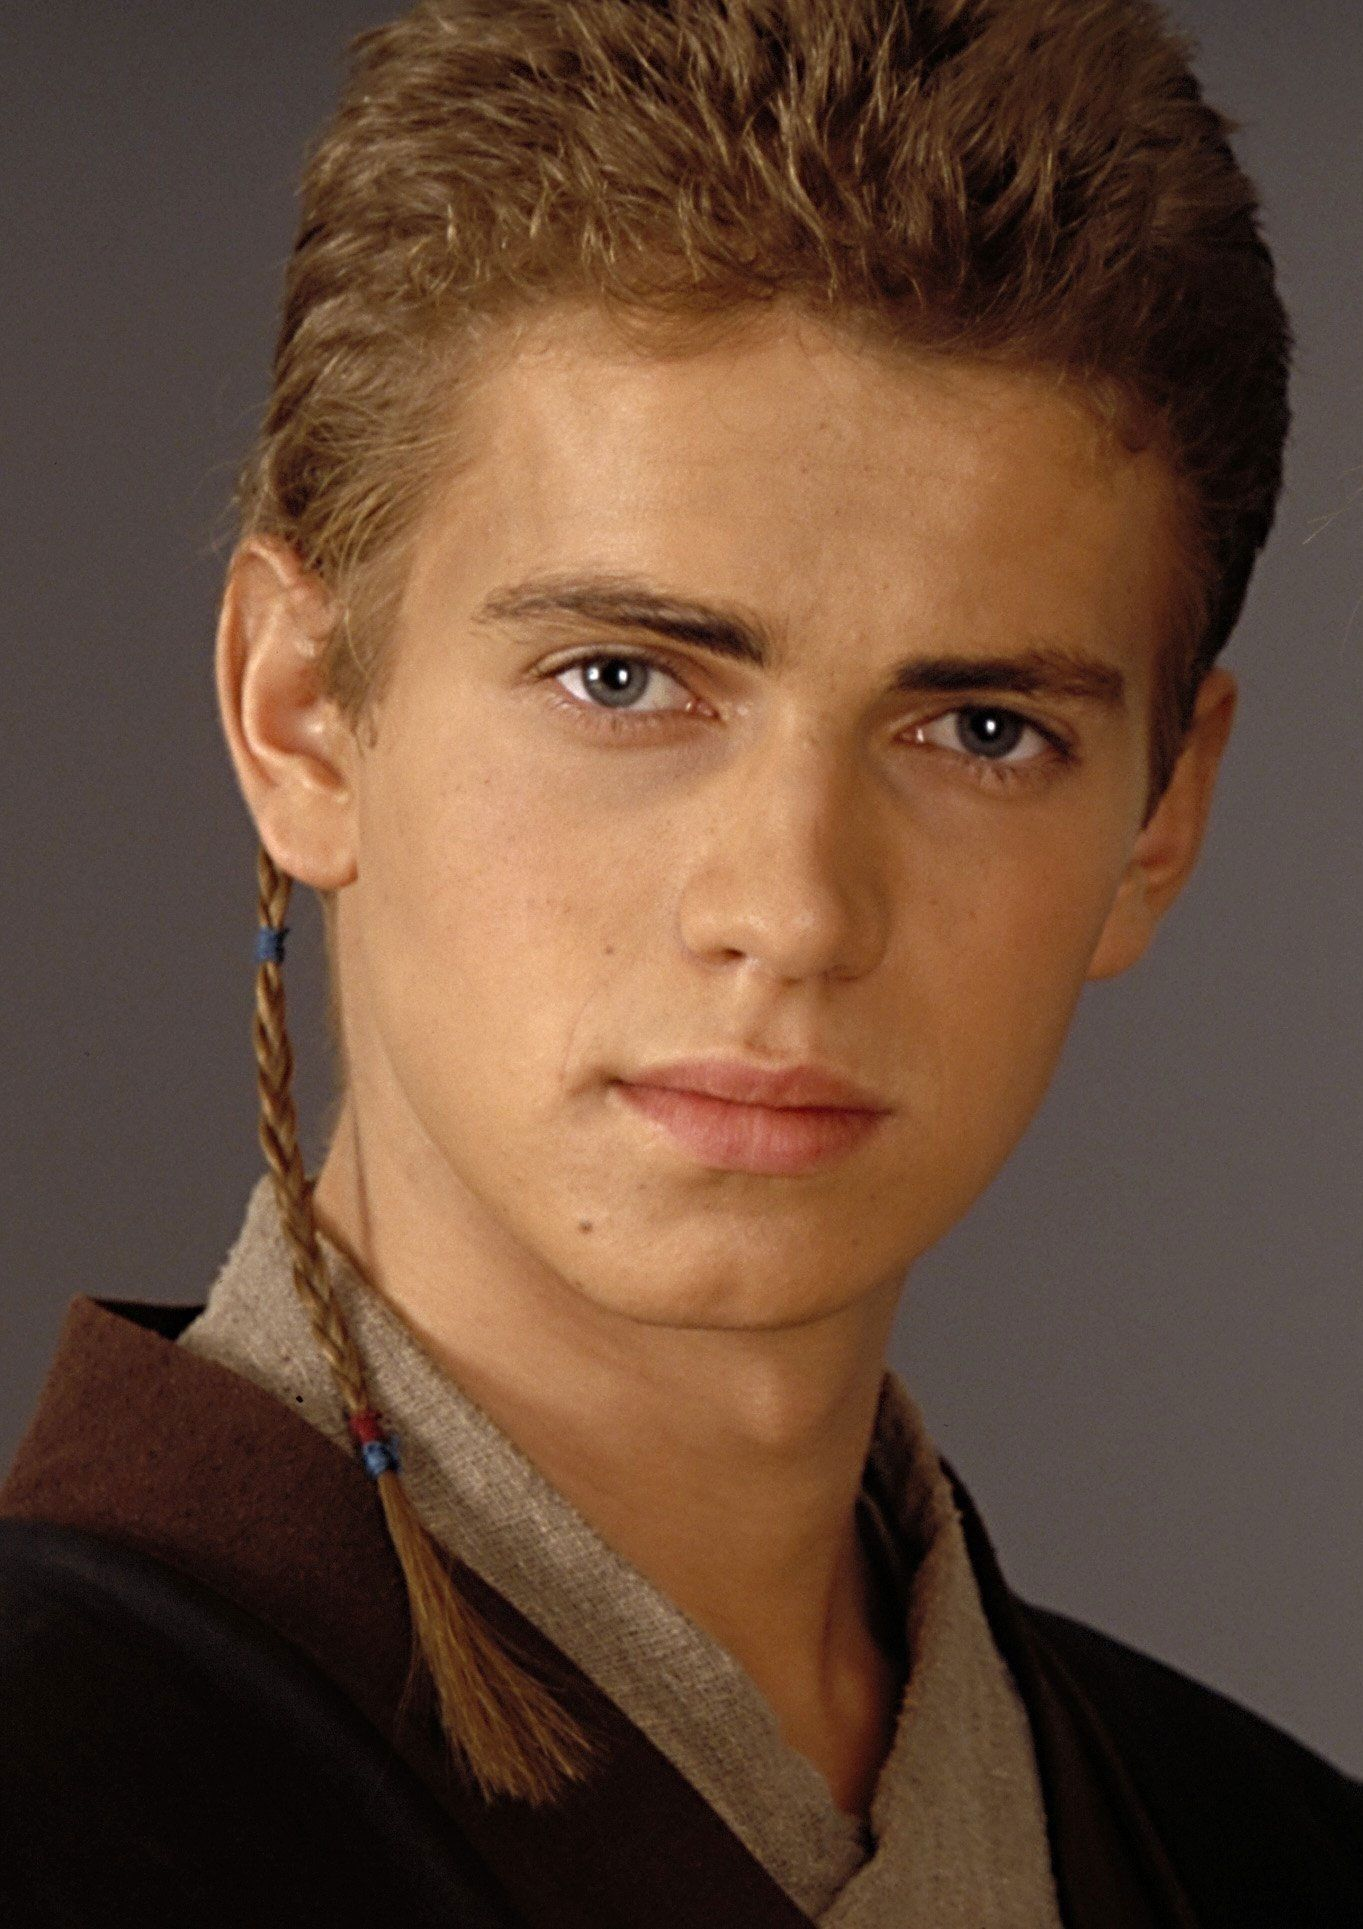 Anakin Skywalker Was A Force Sensitive Human Male Who Served The Galactic Republic As Jedi Knight And Later Empire Sith Lord Darth